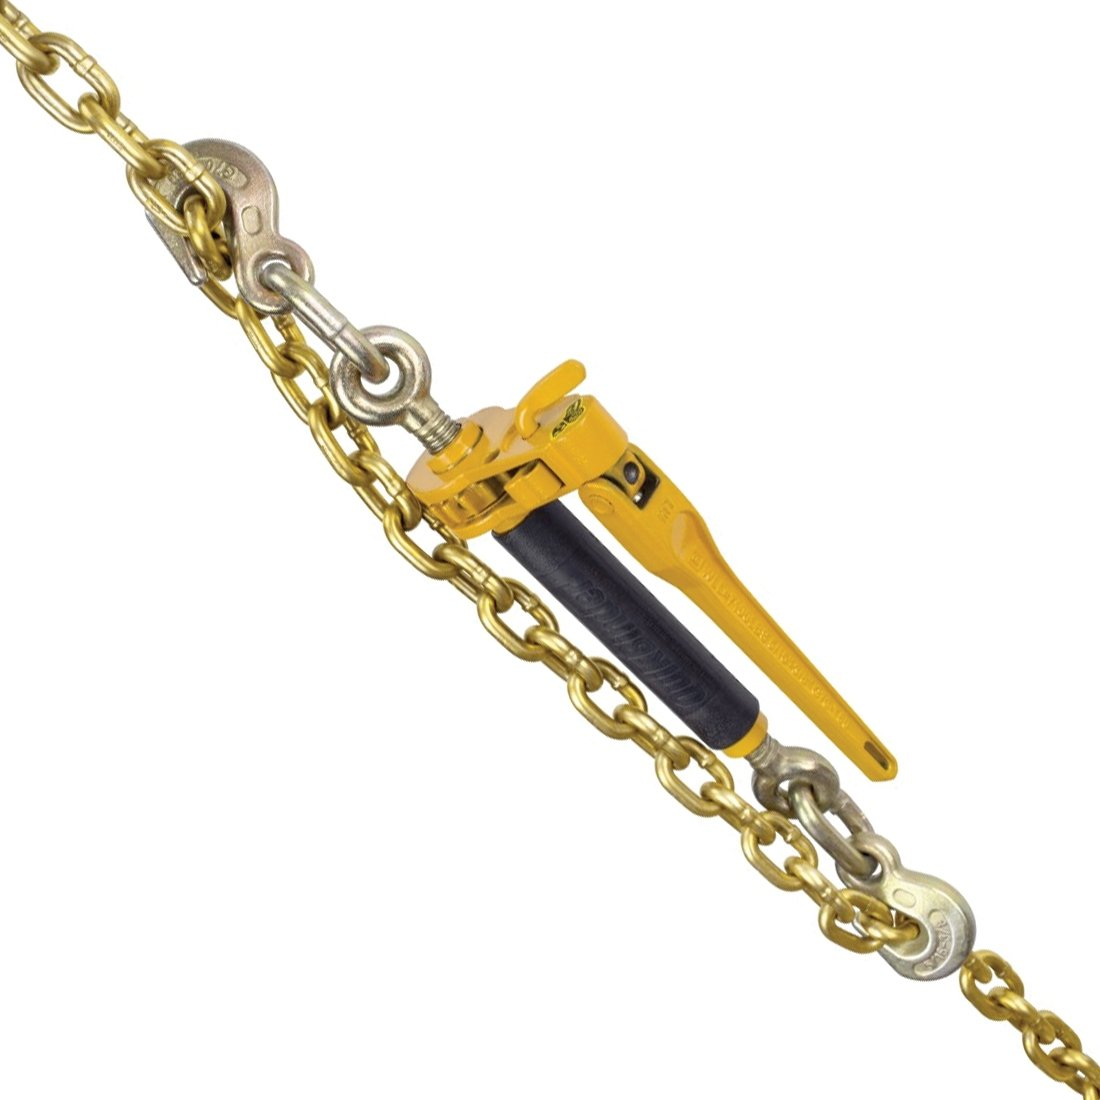 Peerless Ratchet Style Folding Handle Load Binder With 2 Grab Hooks 7,100 lbs Safe Working Load For 5//16 Grade 70, 3//8 Grade 70 or 3//8 Grade 80 Chain - Pack of 4